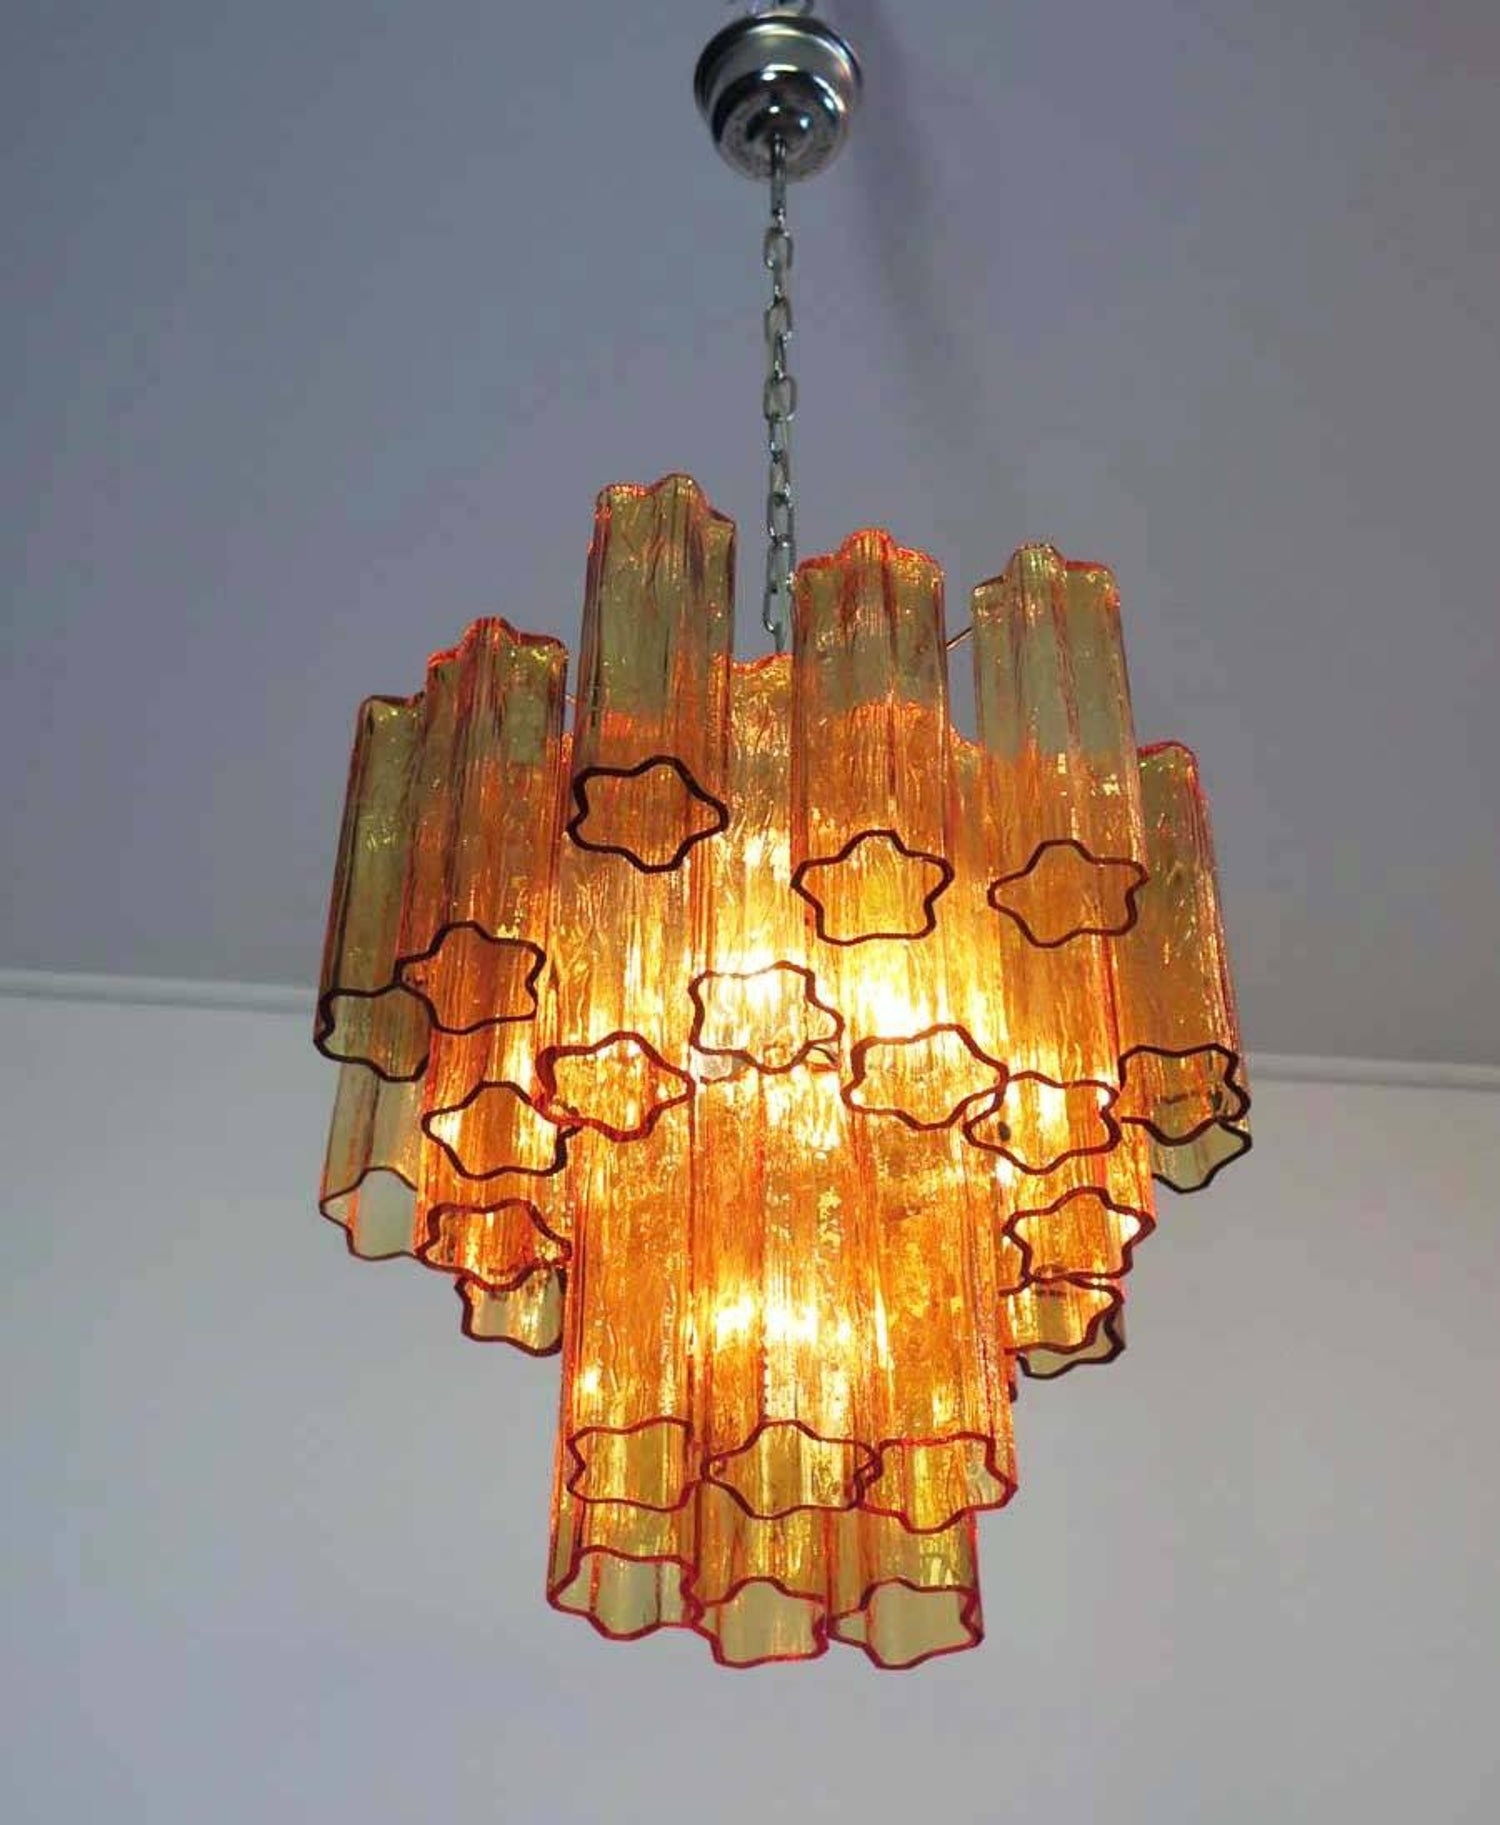 orange hand are art craft round finished store glasss chandelier artistic would picture the blown color be our from original as such different glass light little chihuly small product diy products a